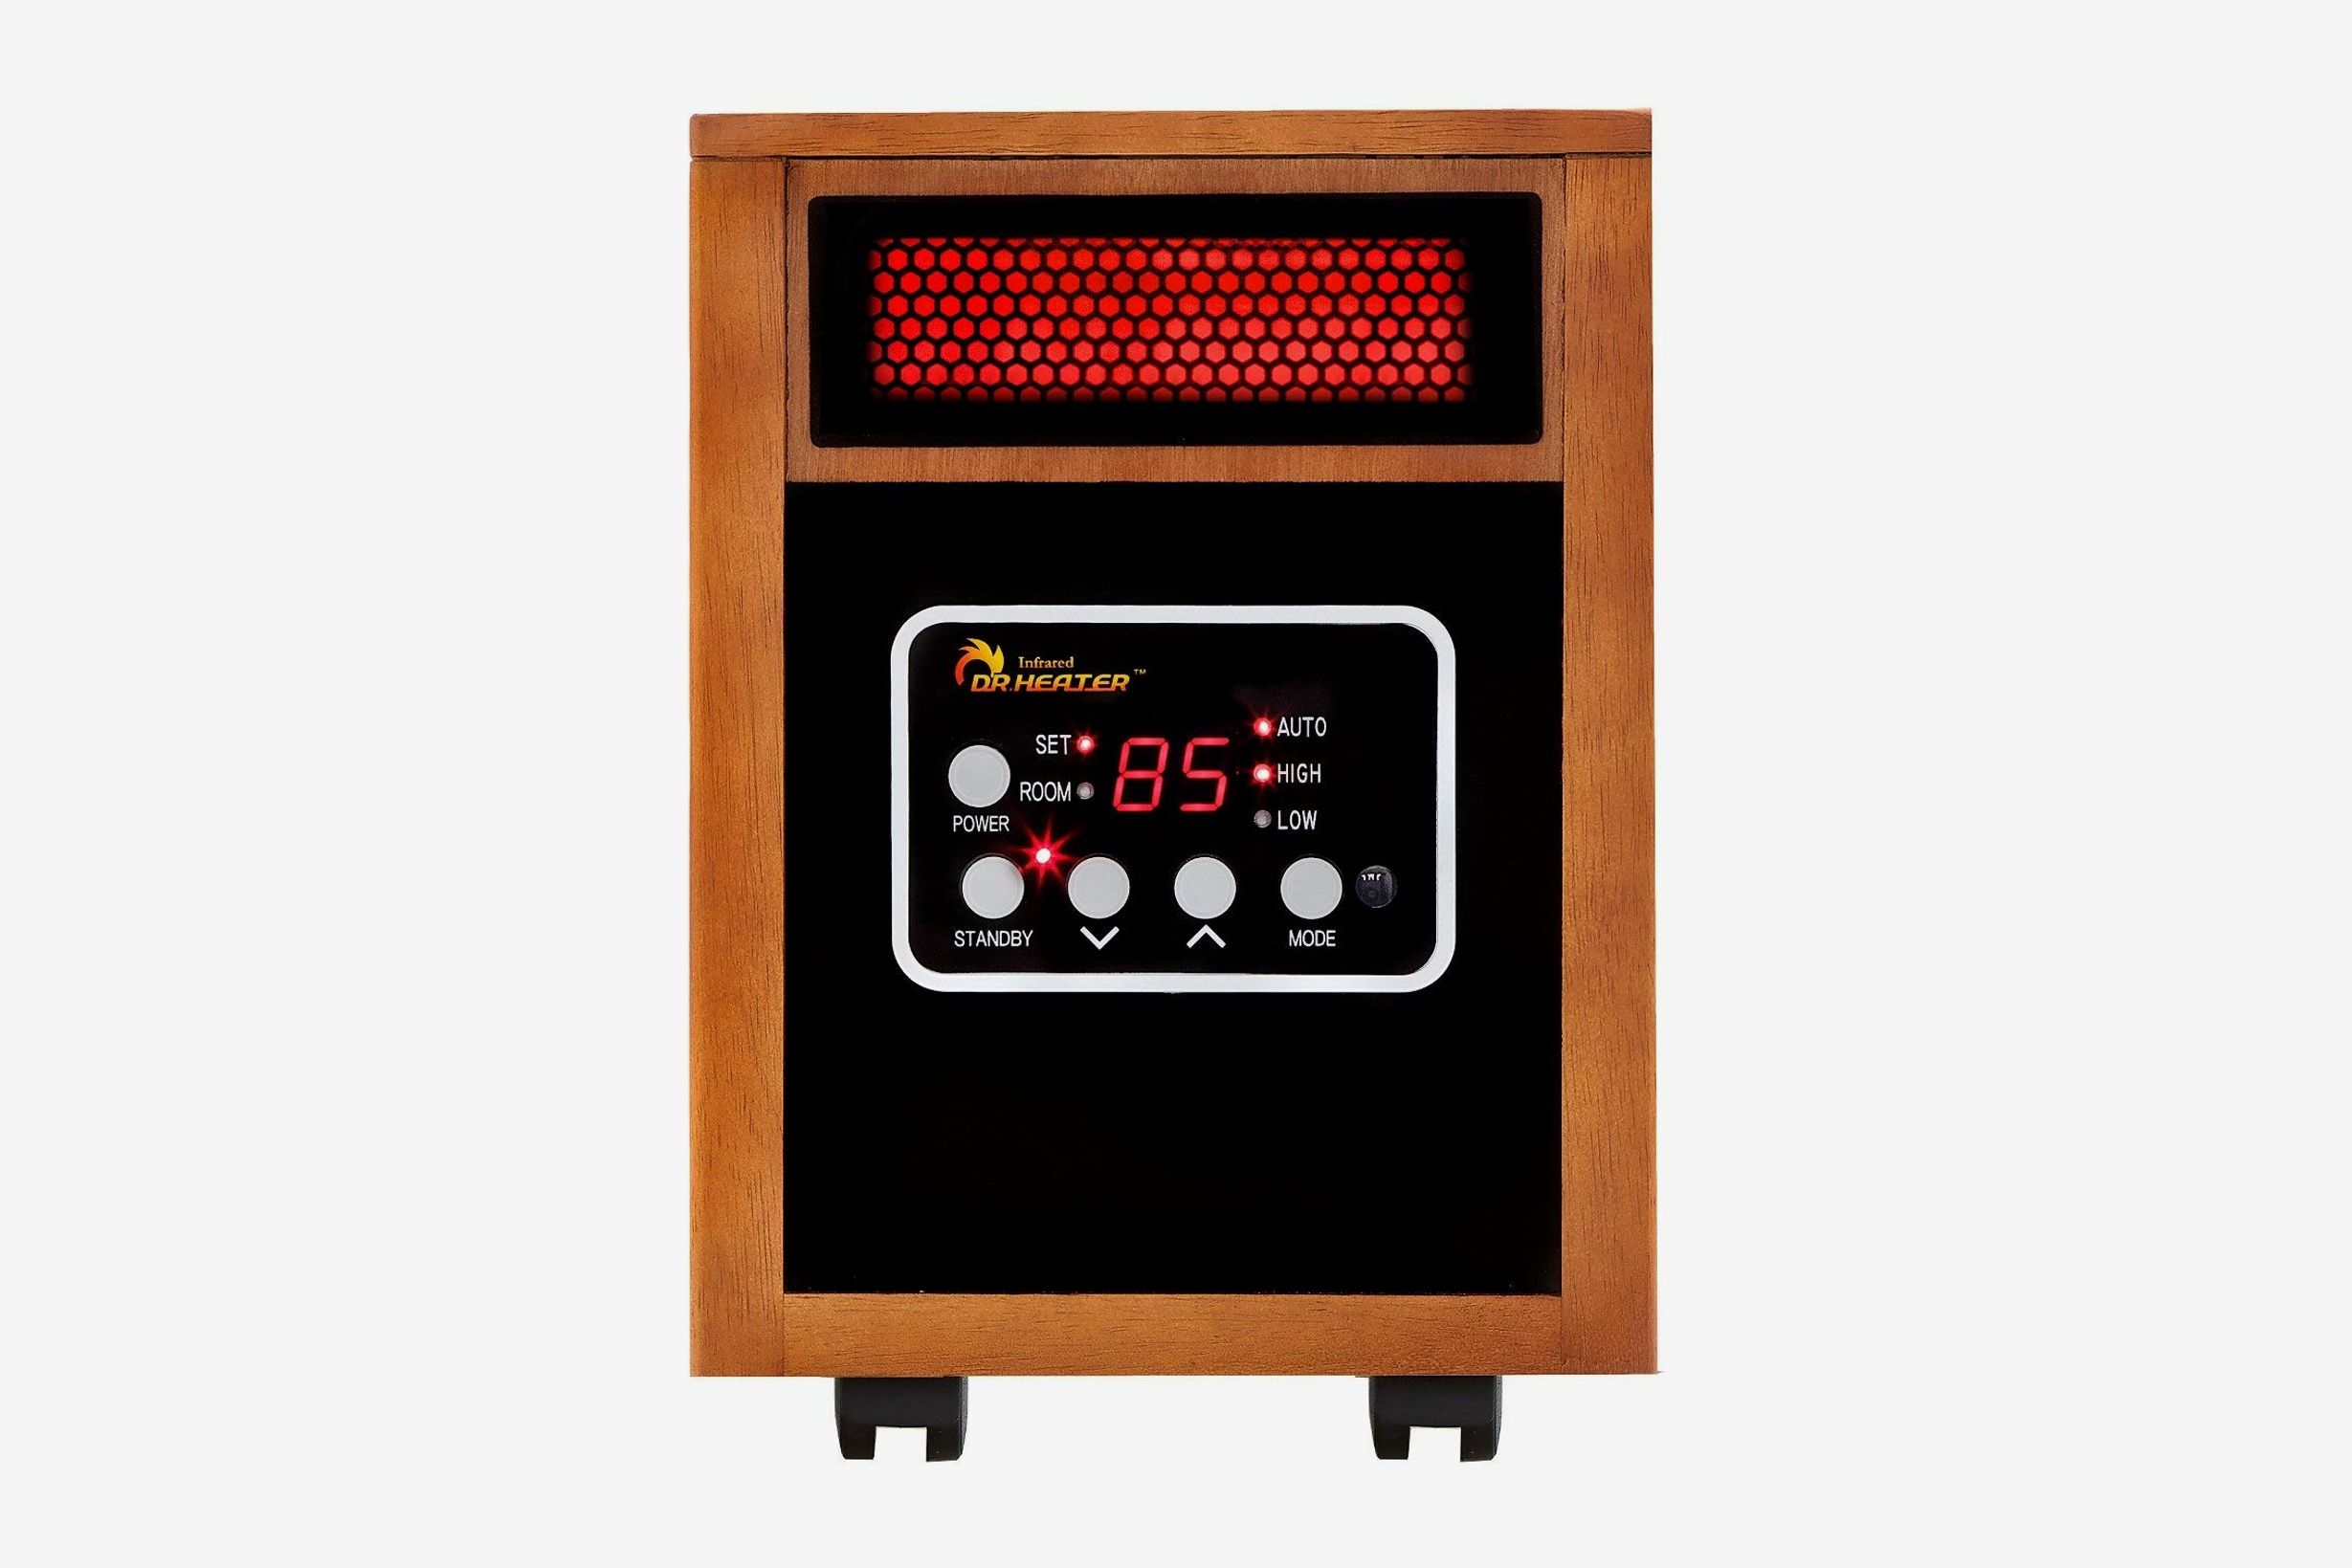 Dr Infrared Portable Space Heater, 1500-Watt